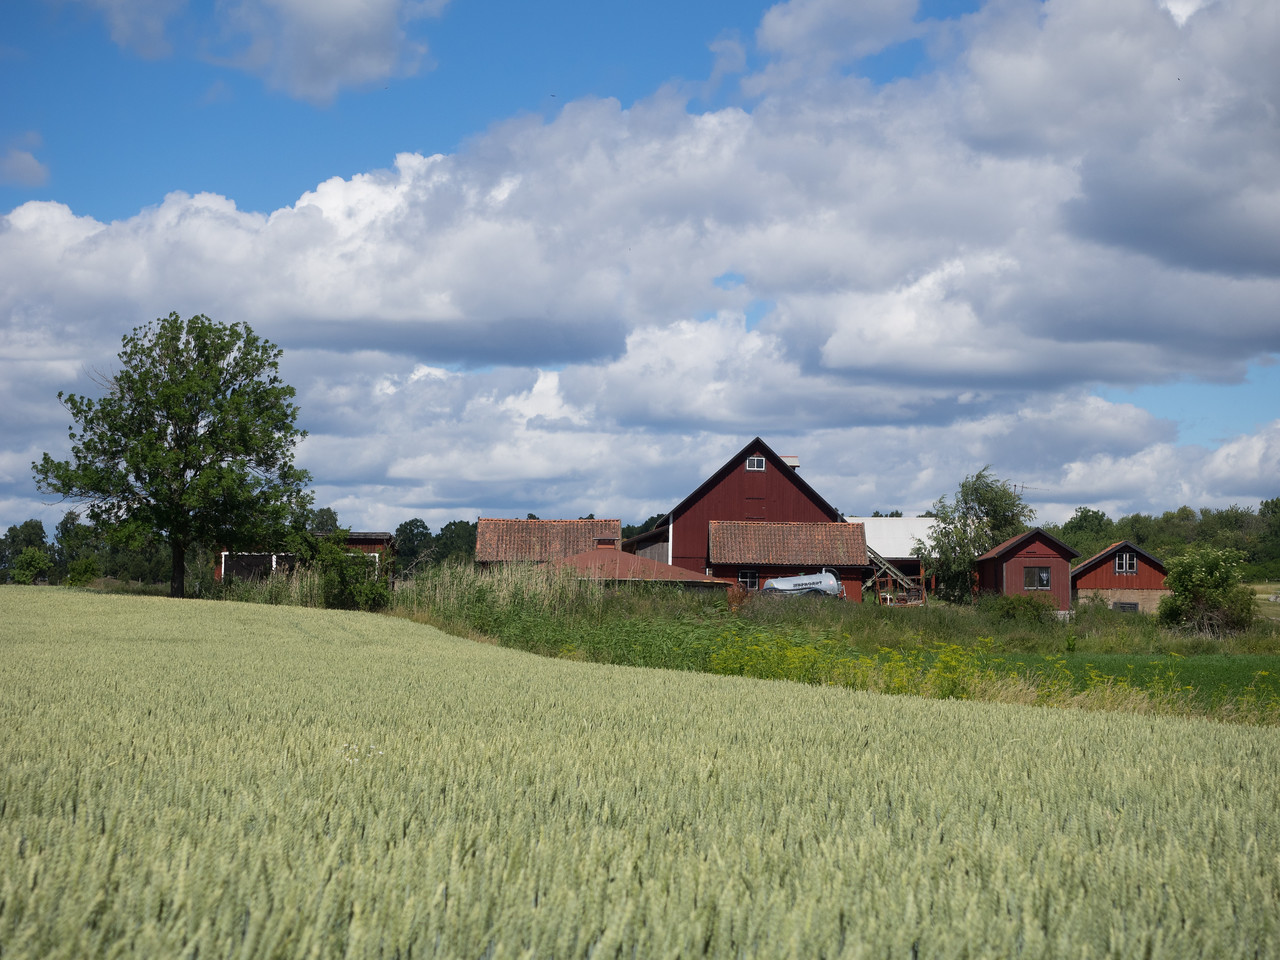 More red barns on Birka